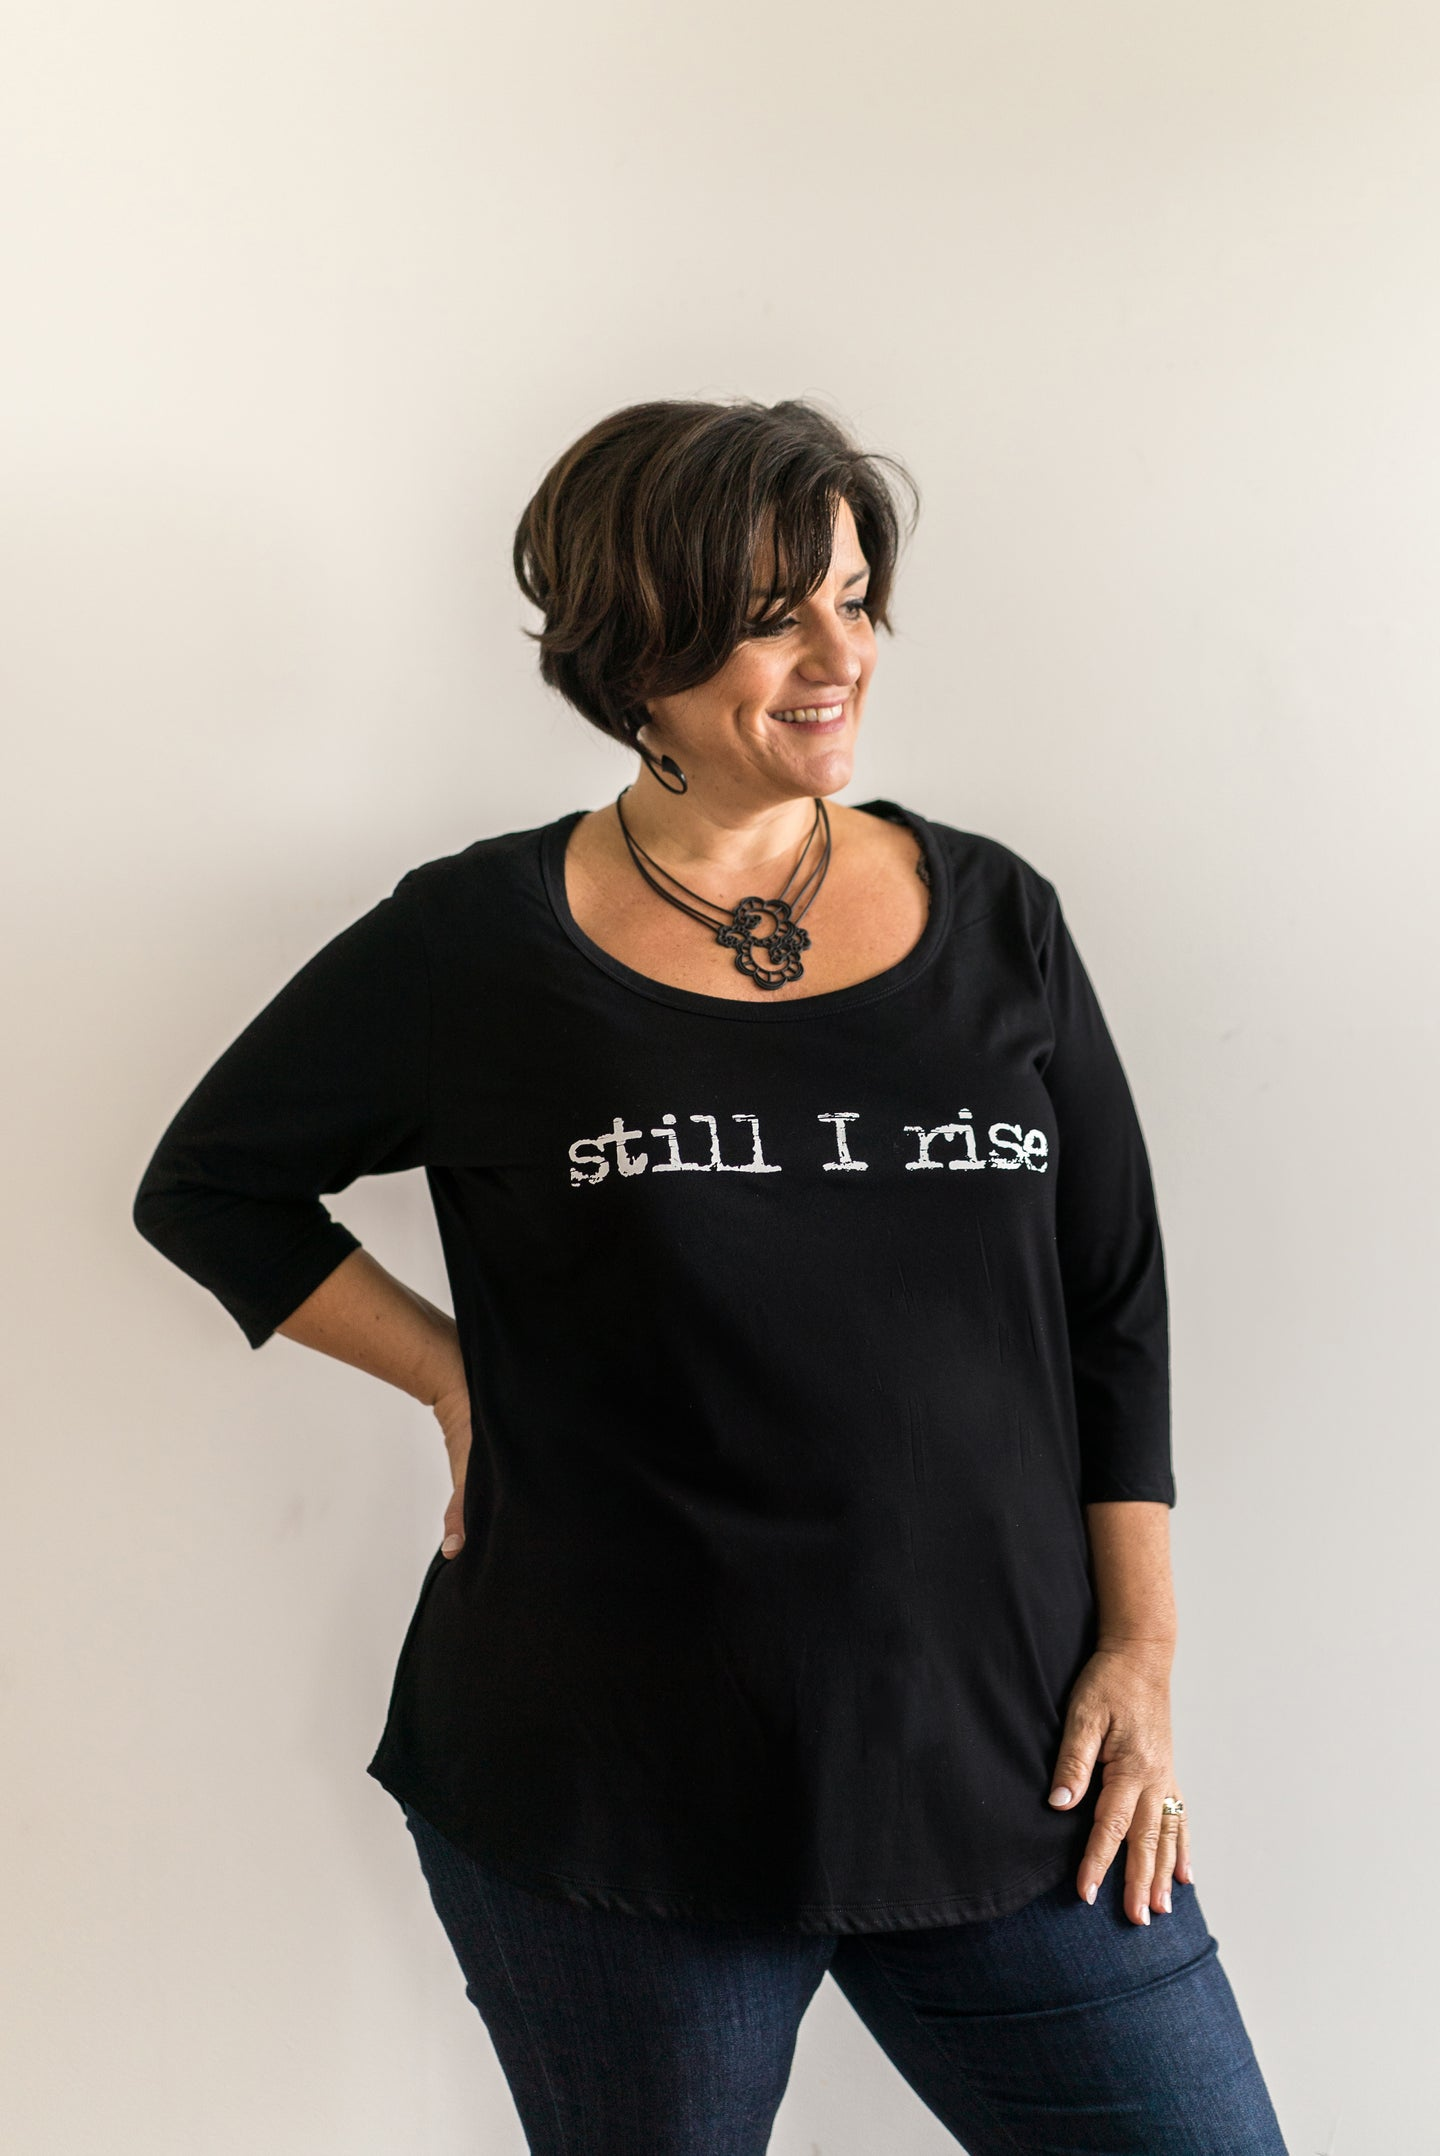 'Still I Rise' 100% Cotton Printed Top